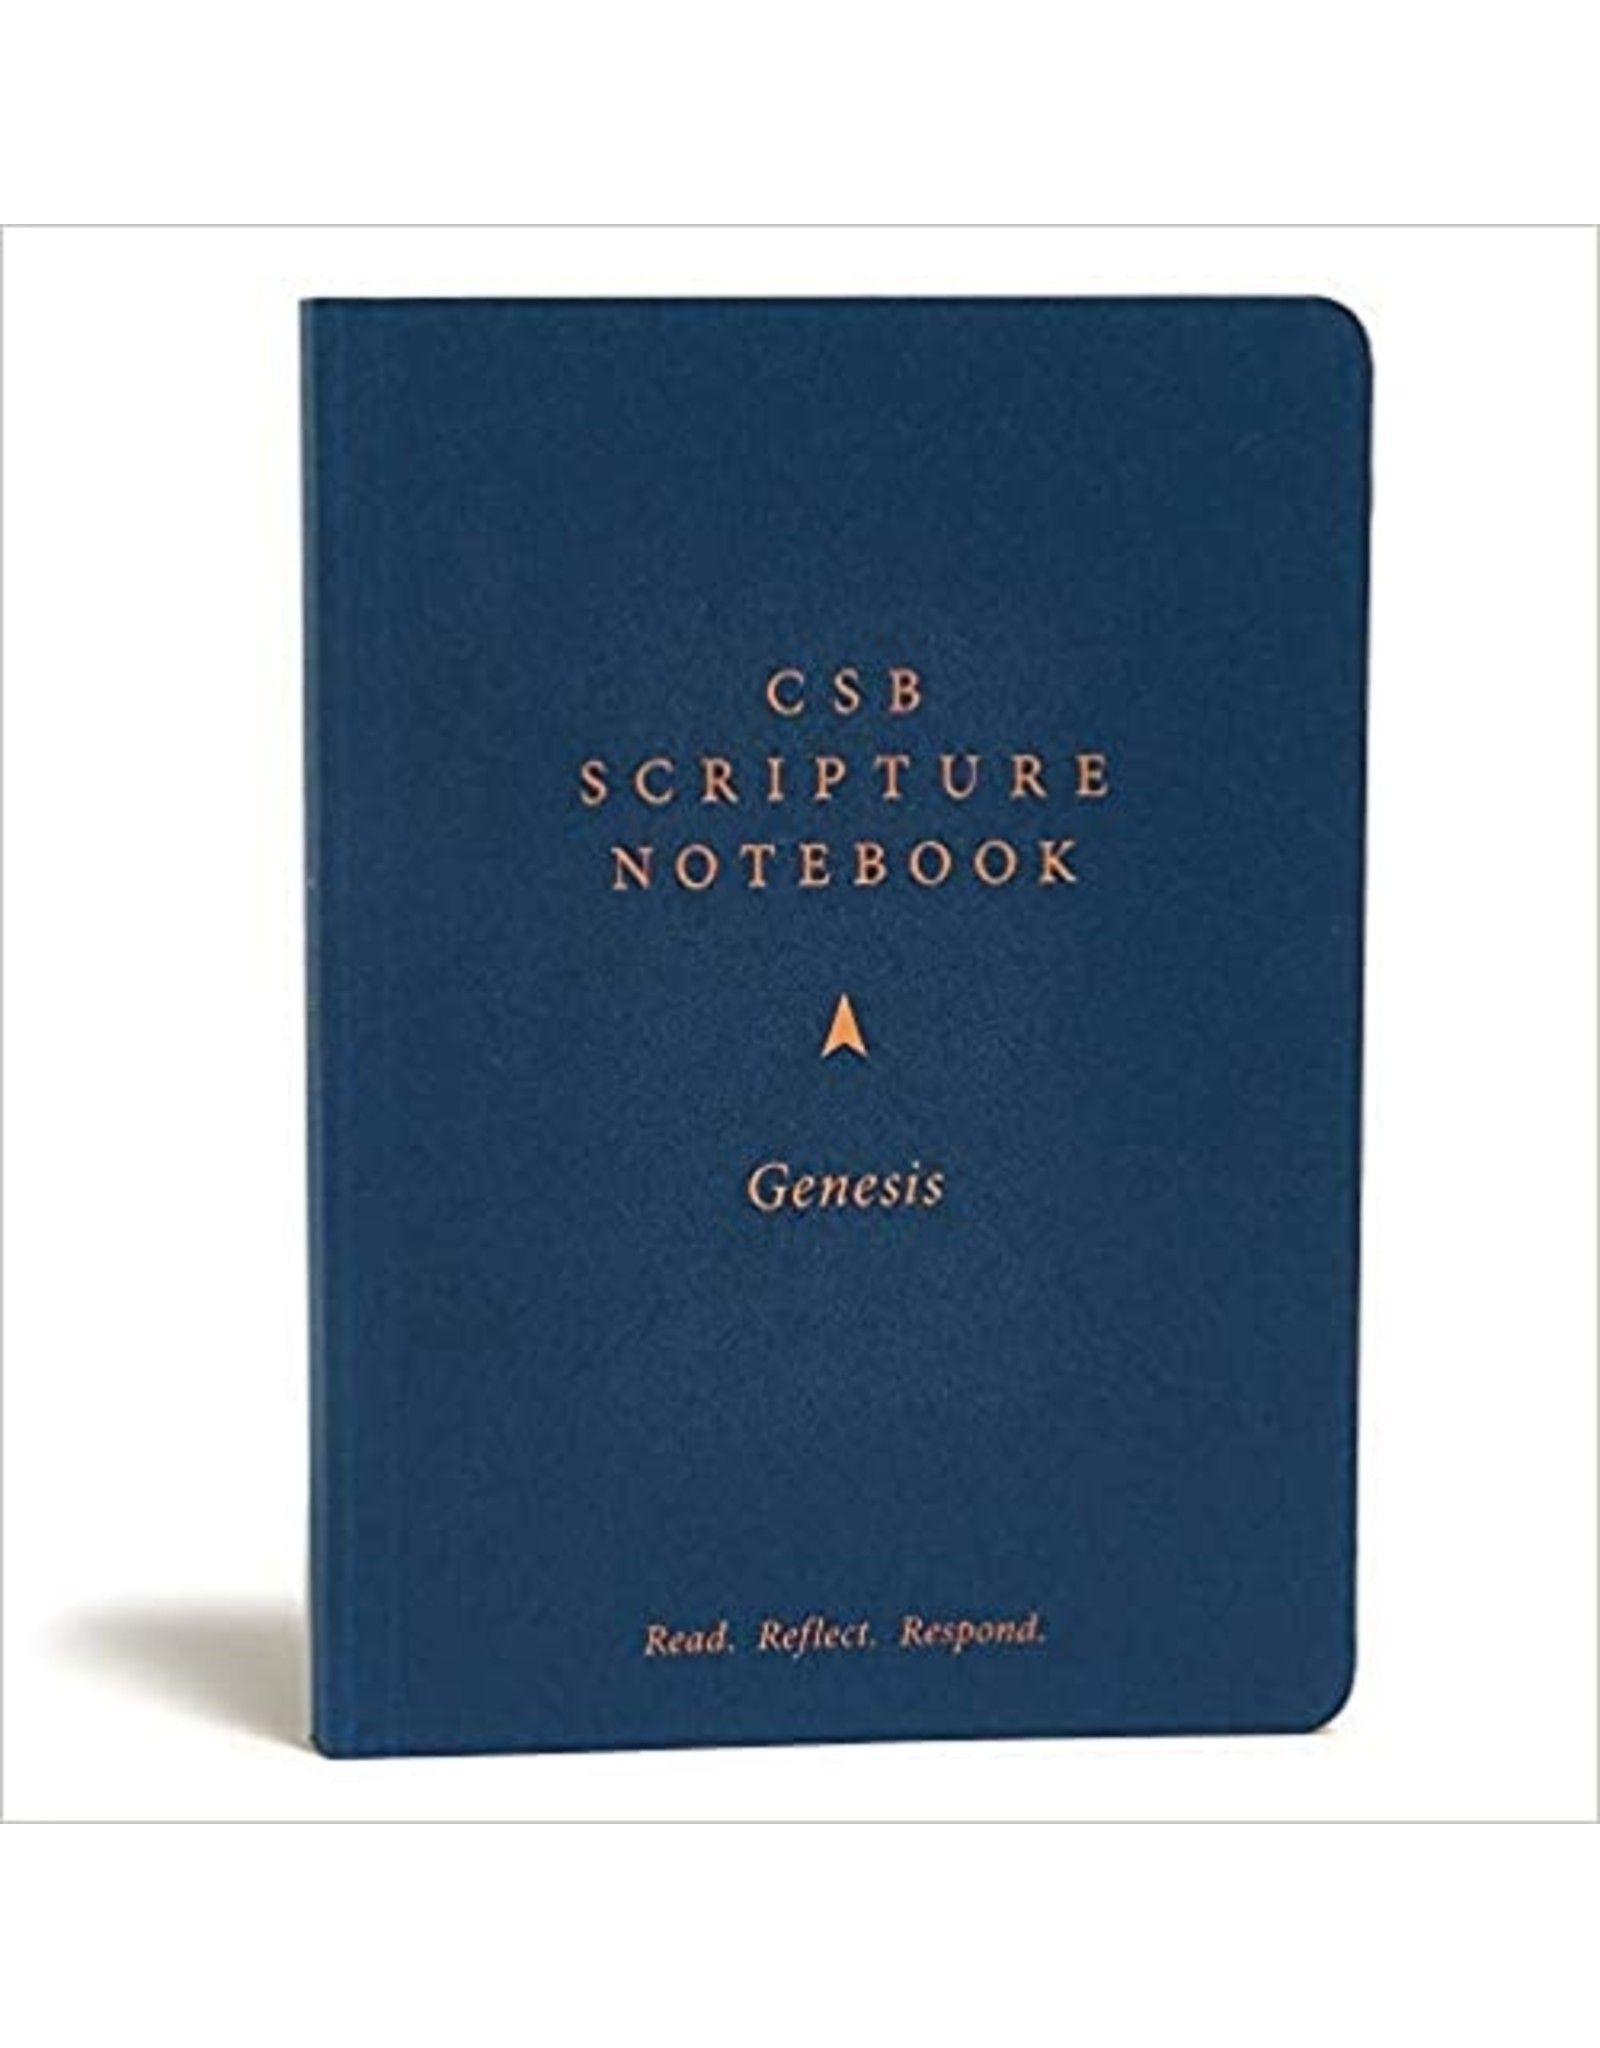 CSB Scripture Notebook - Genesis